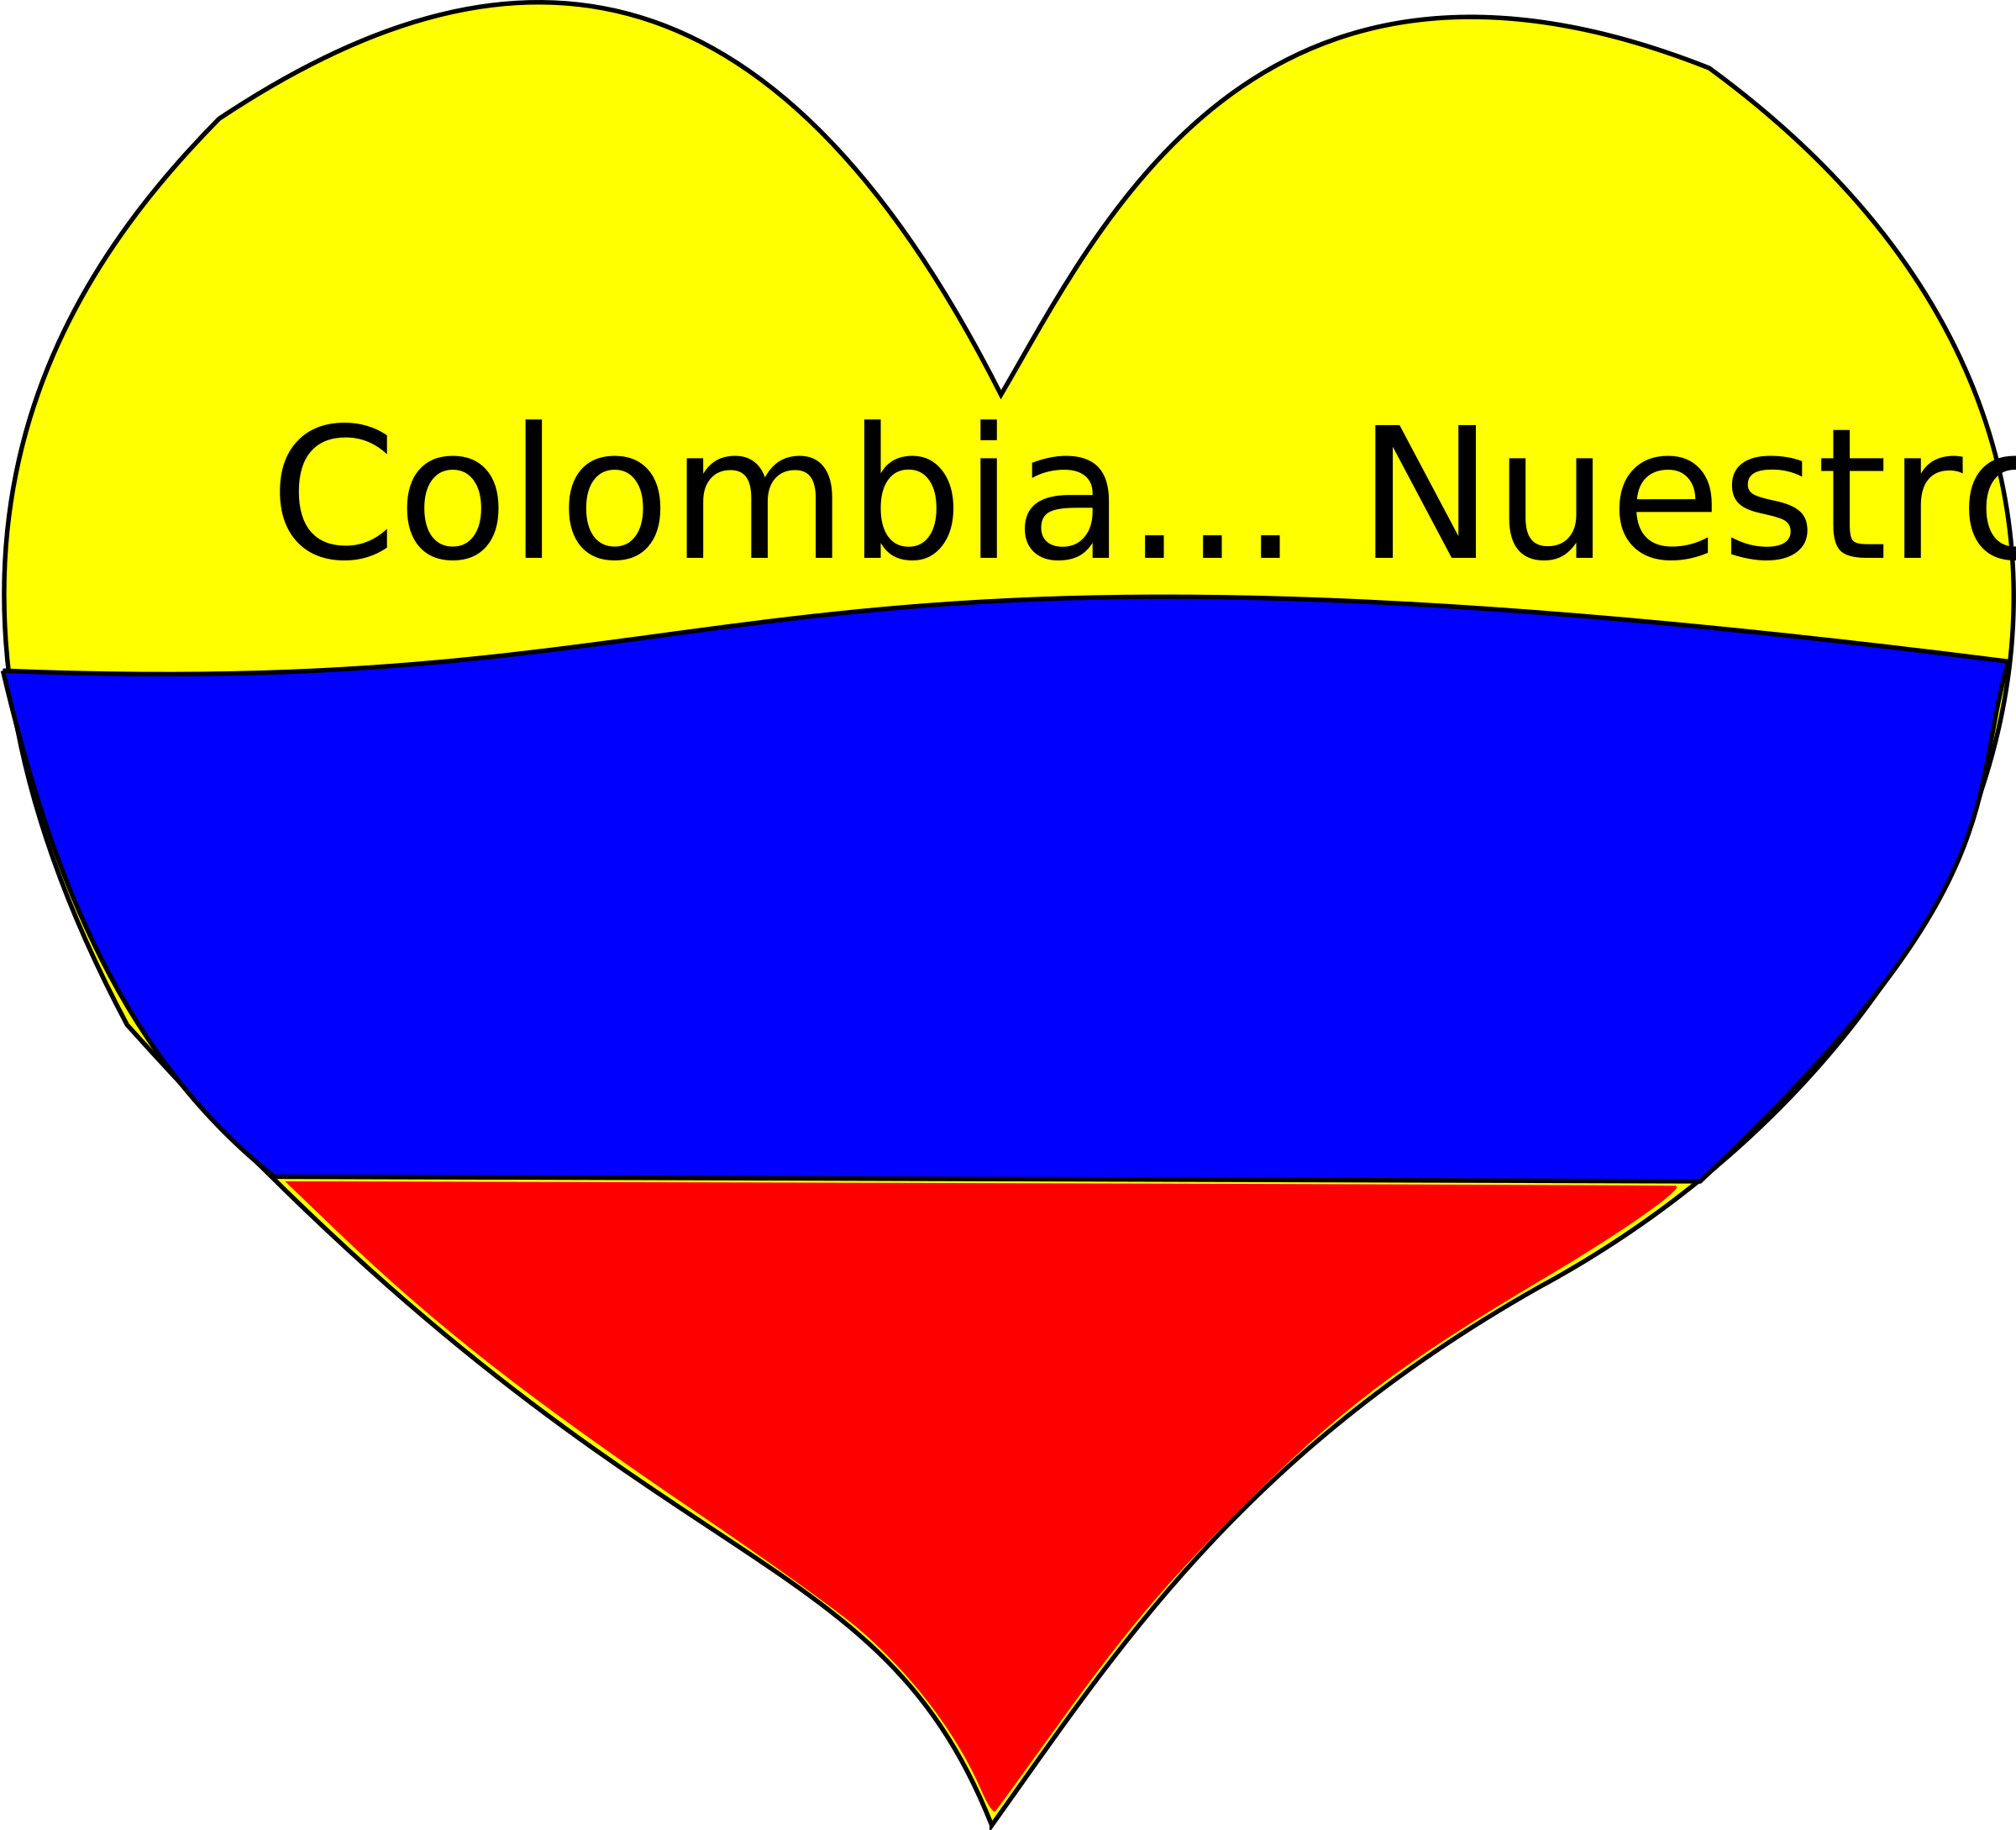 Corazon colombiano by Esteban